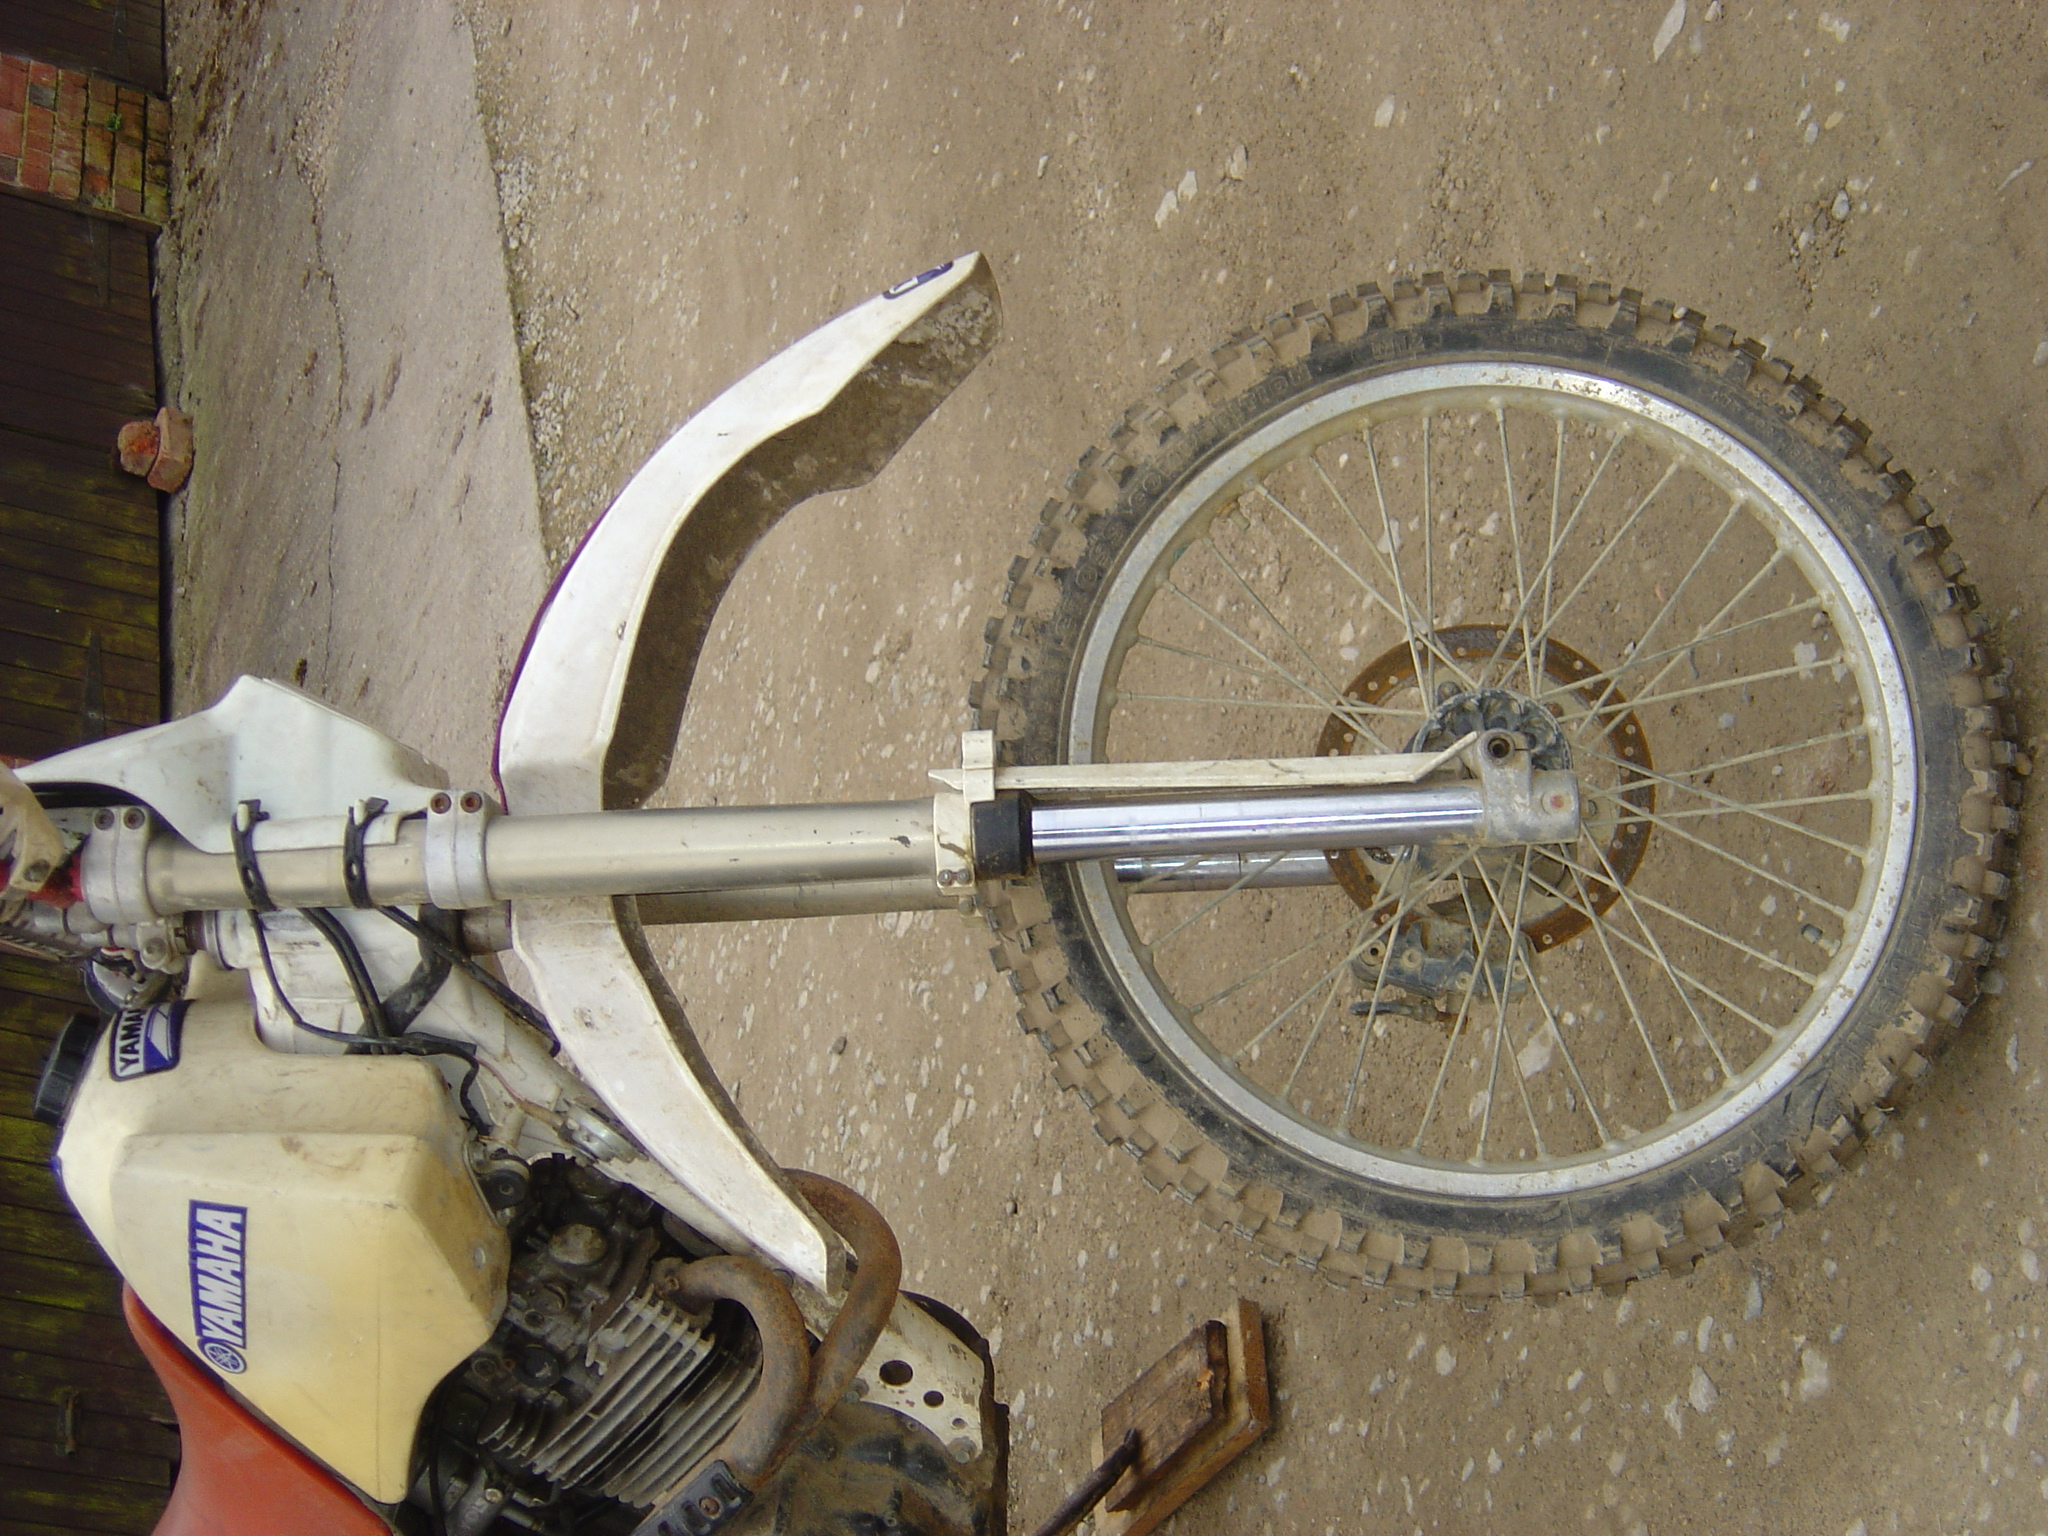 Yamaha dtr 125 motor cycle trails bike breaking for for Colorado motorized bicycle laws